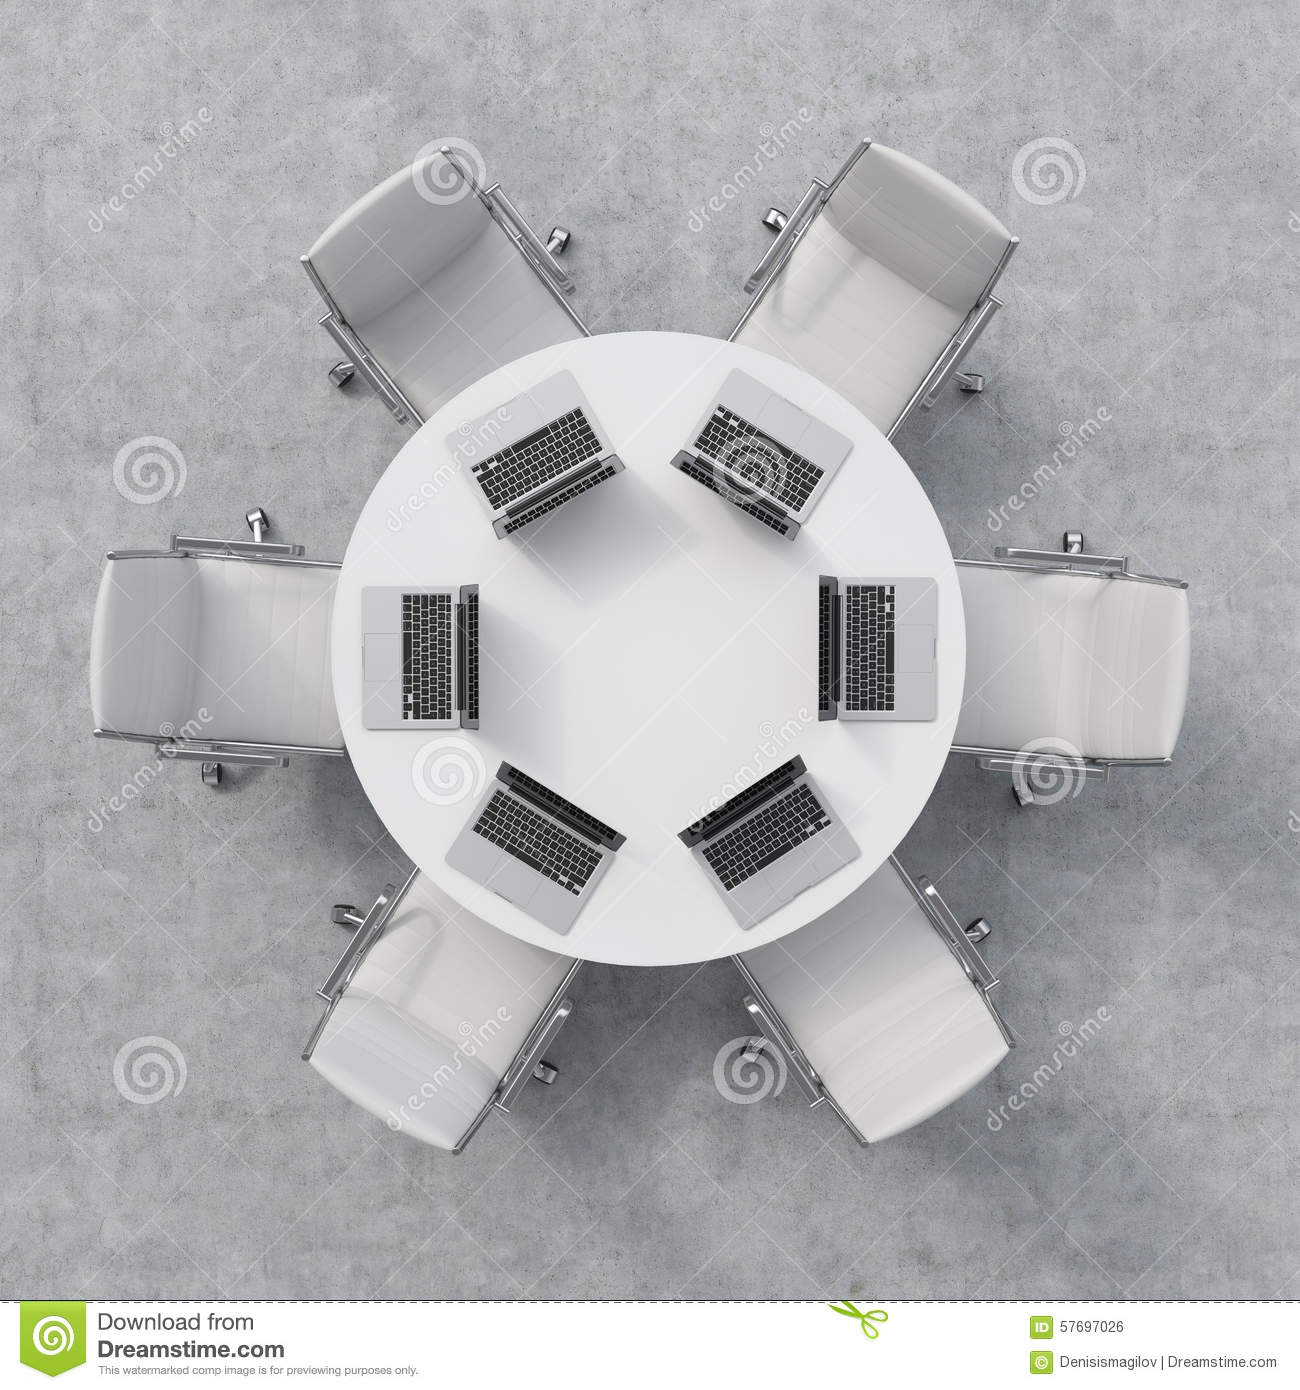 Top View Of A Conference Room A White Round Table Six  : top view conference room white round table six chairs six laptops table office interior d rendering 57697026 from www.dreamstime.com size 1300 x 1390 jpeg 188kB